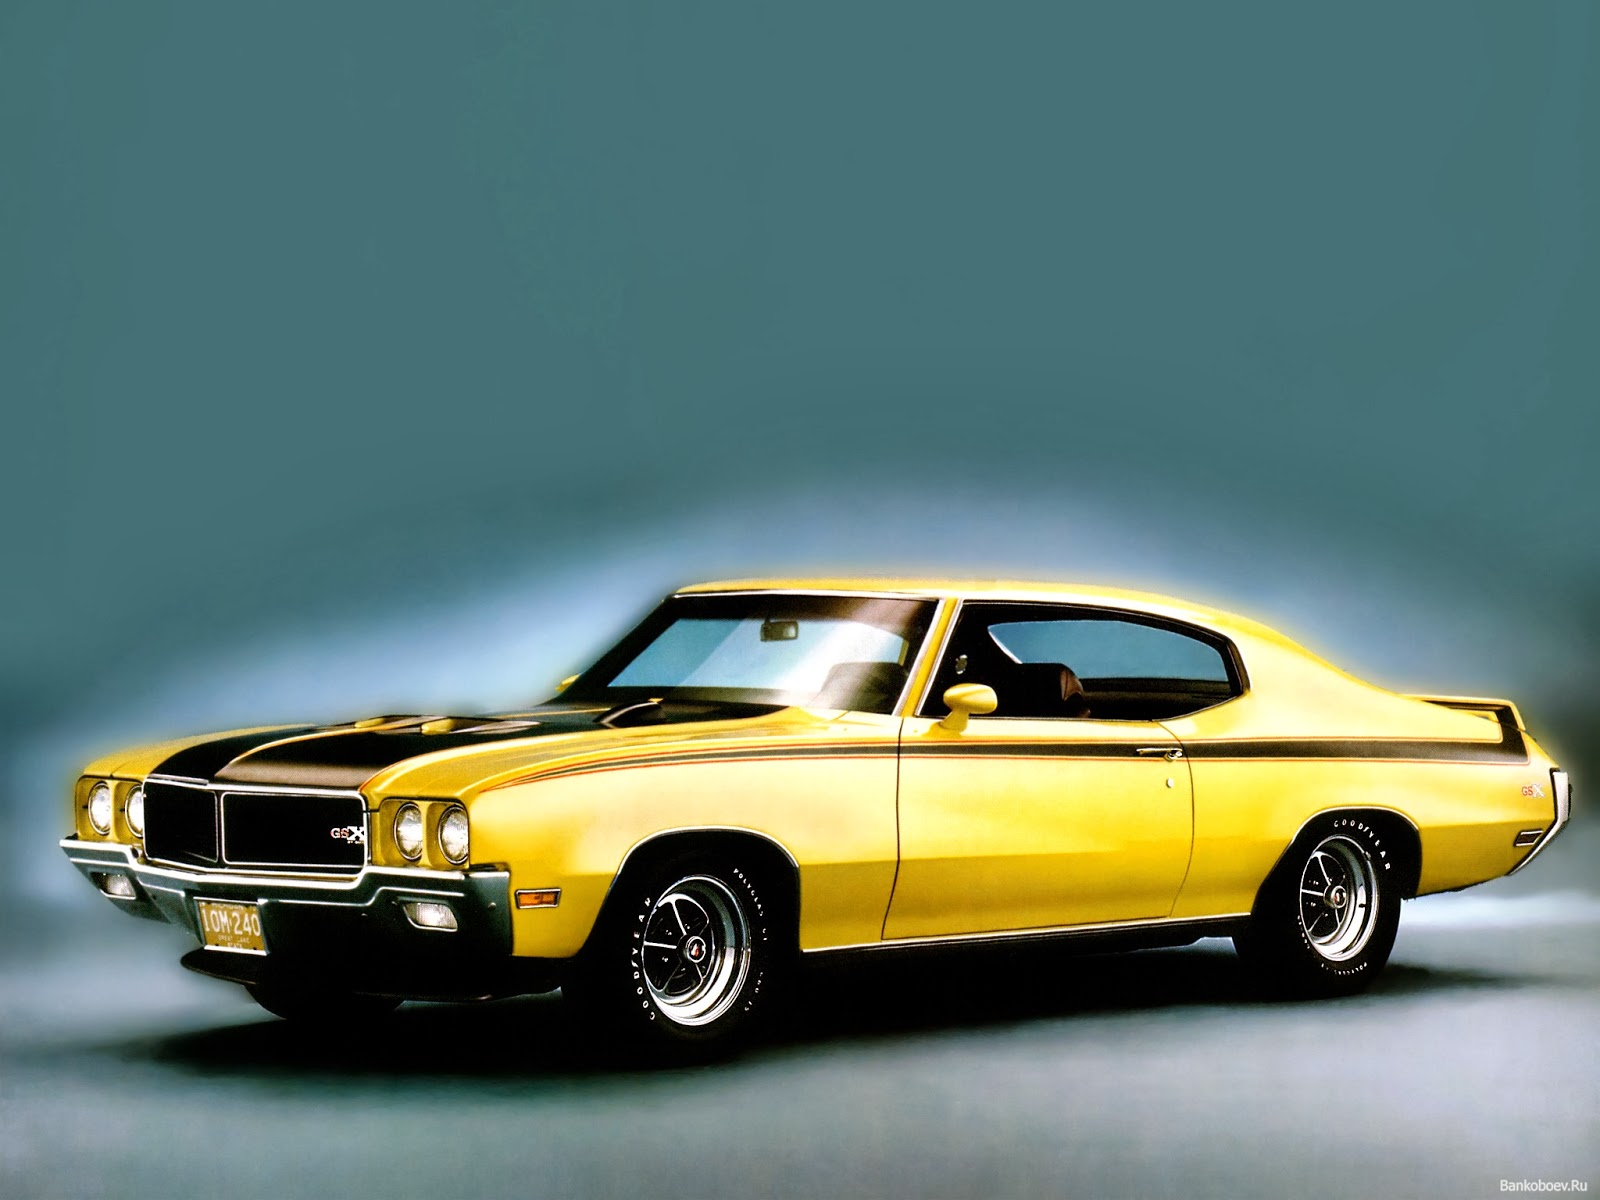 Best of Auto Car: The Best Old Muscle cars in the world